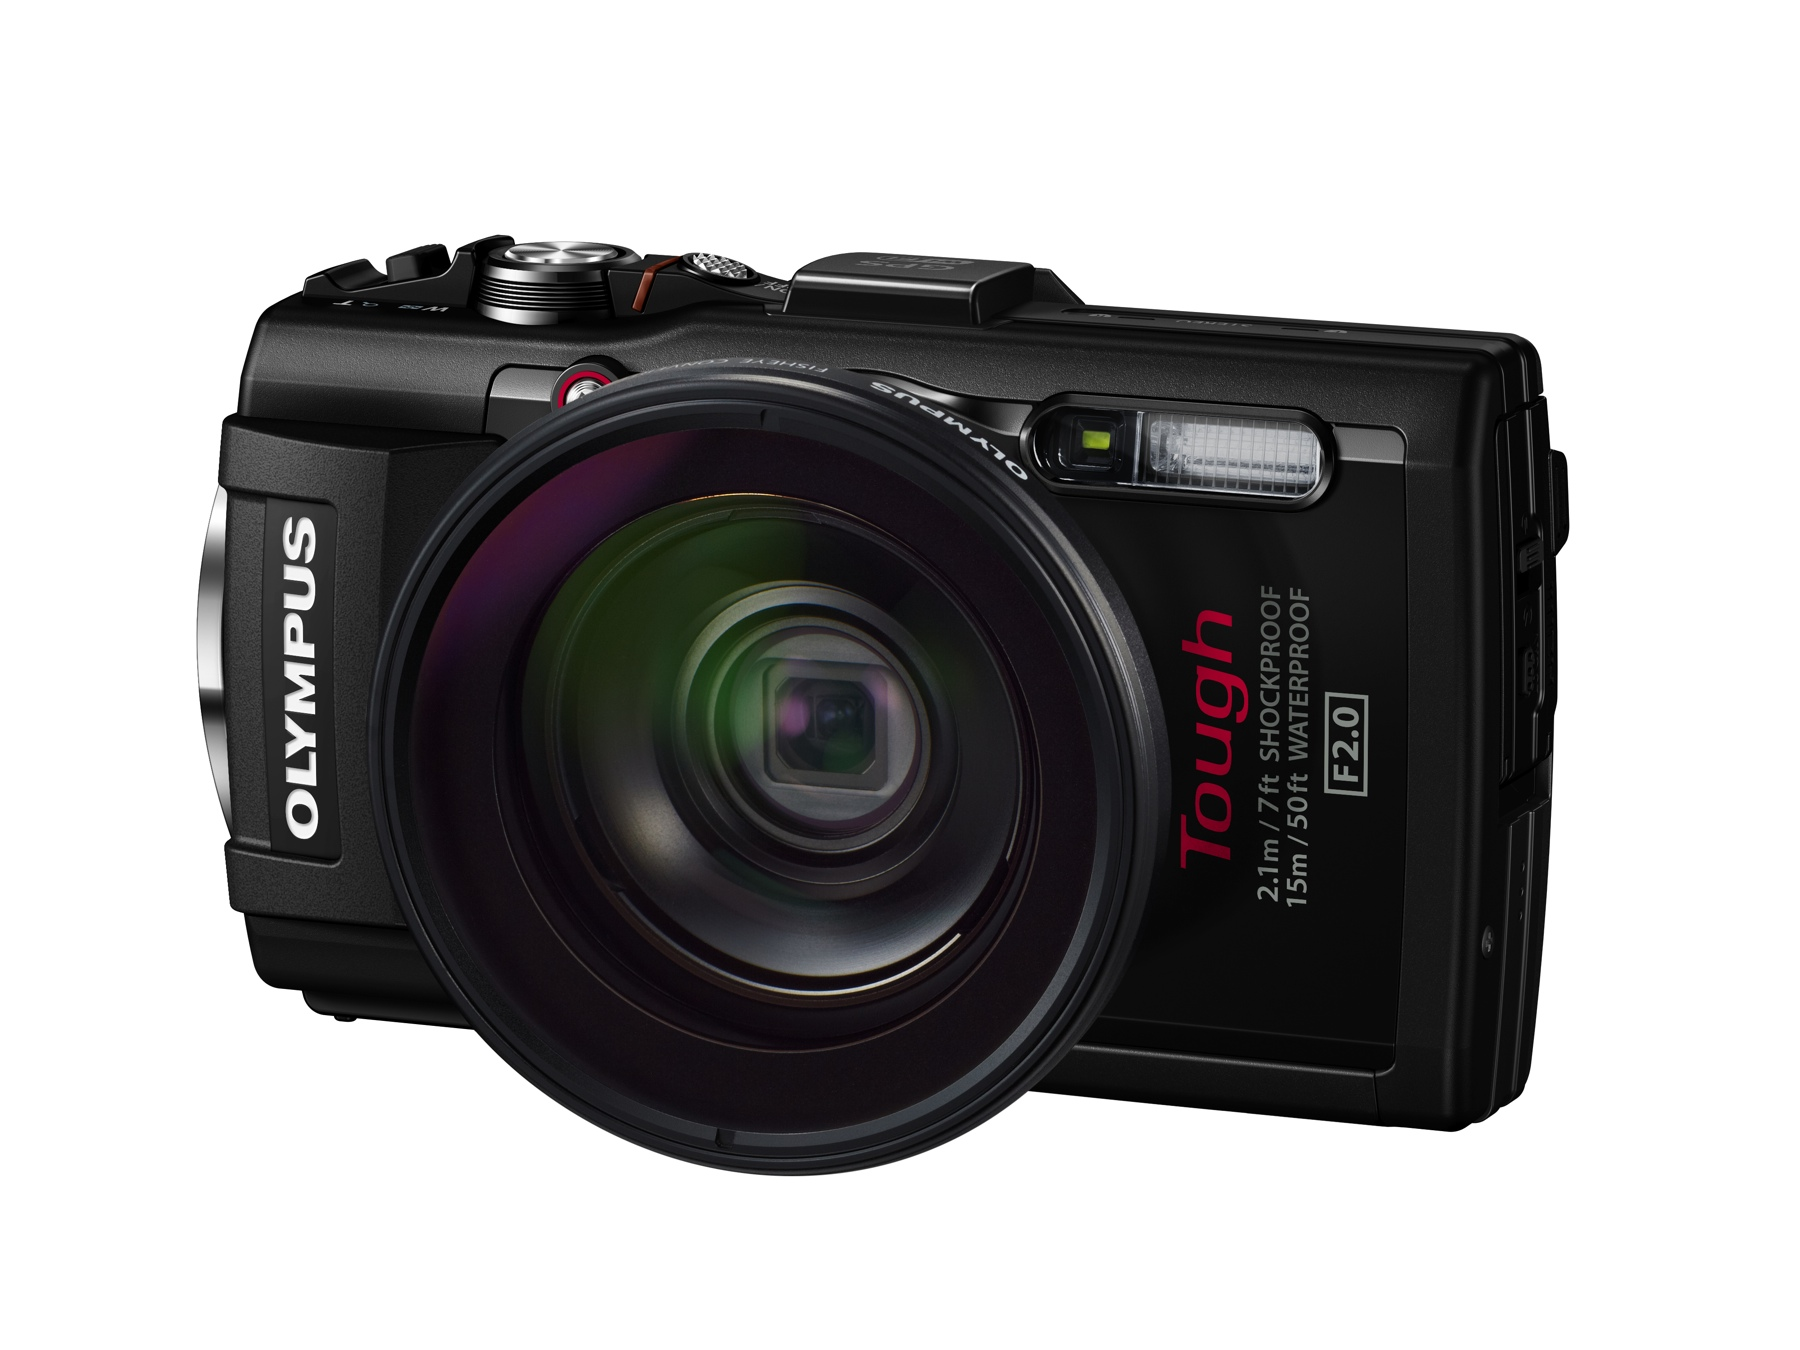 olympus-tg3-tough-camera-1